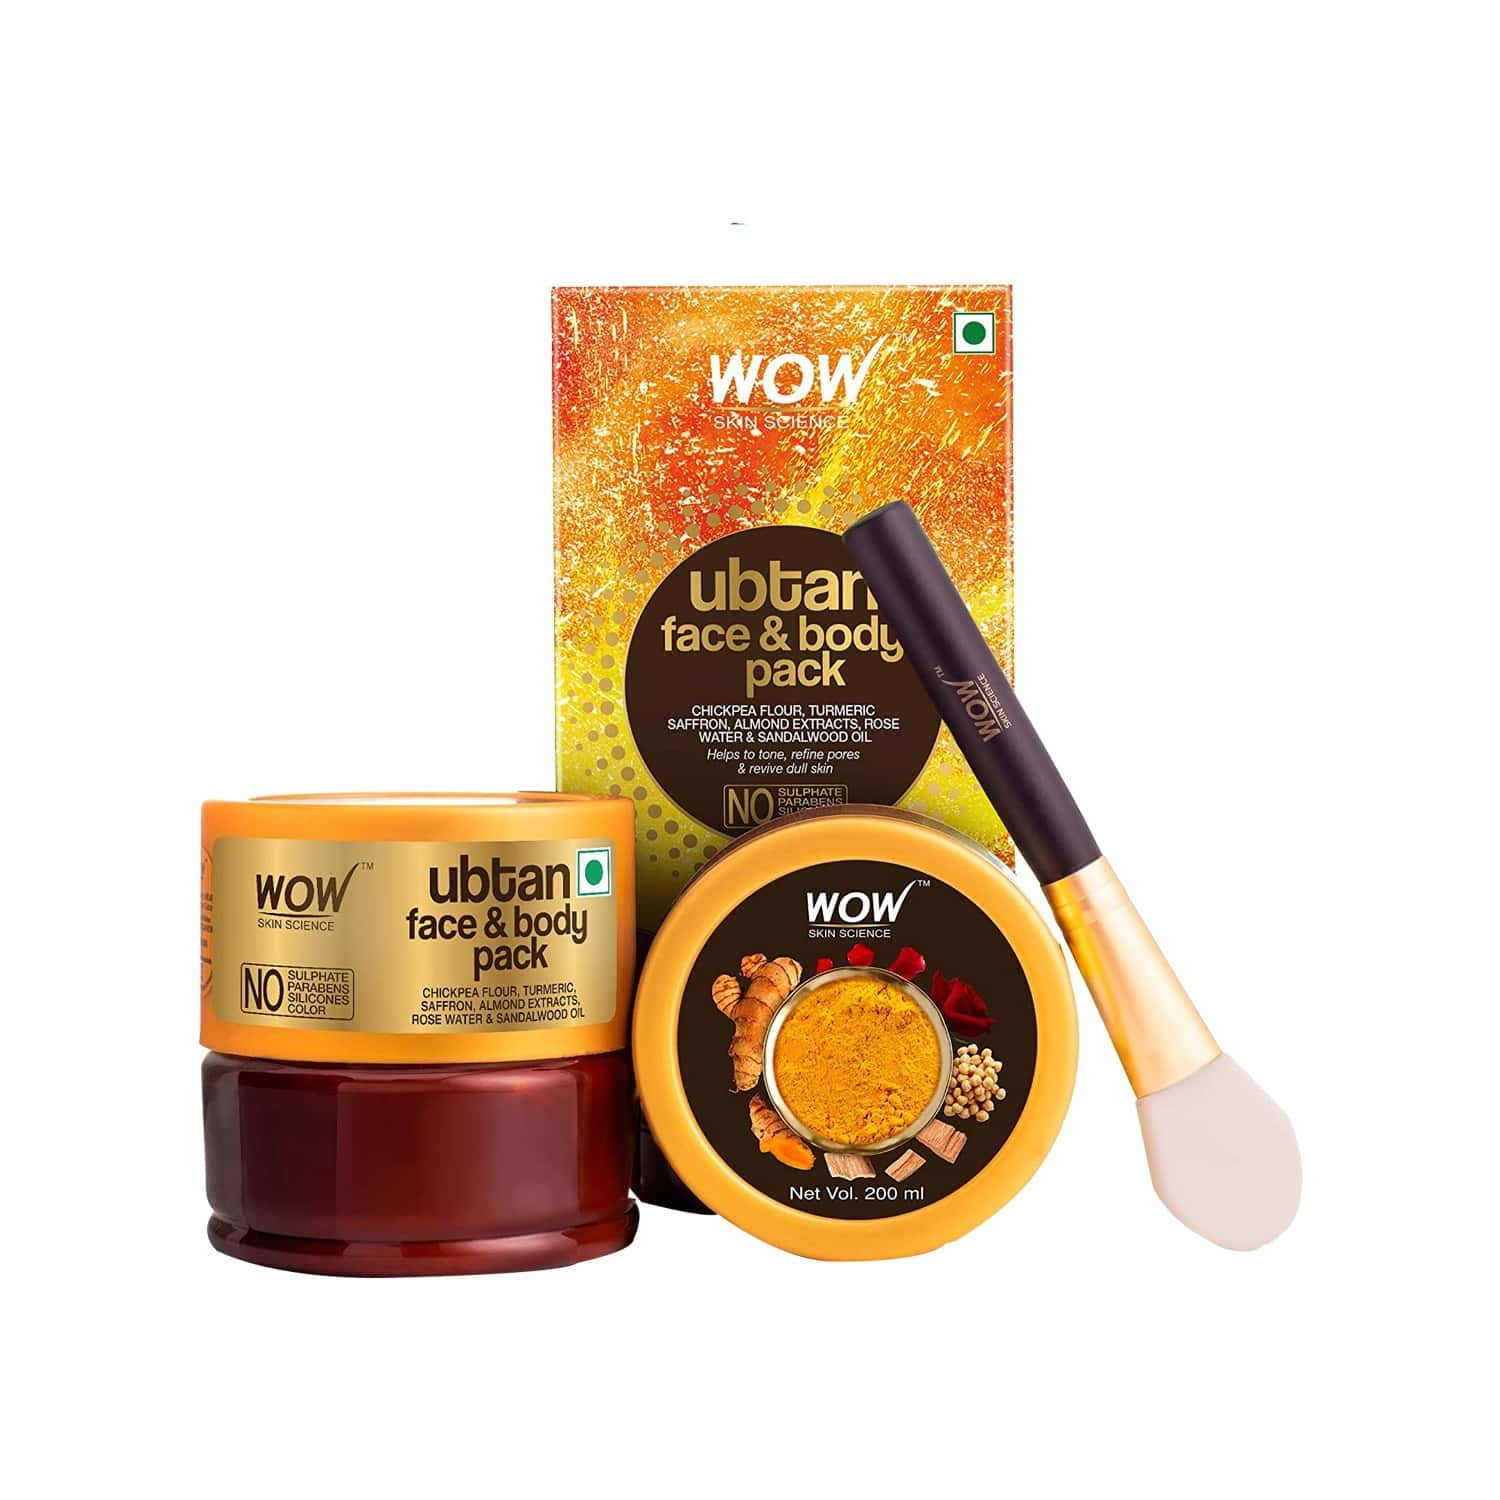 Wow Skin Science Ubtan Face & Body Pack - 200 Ml